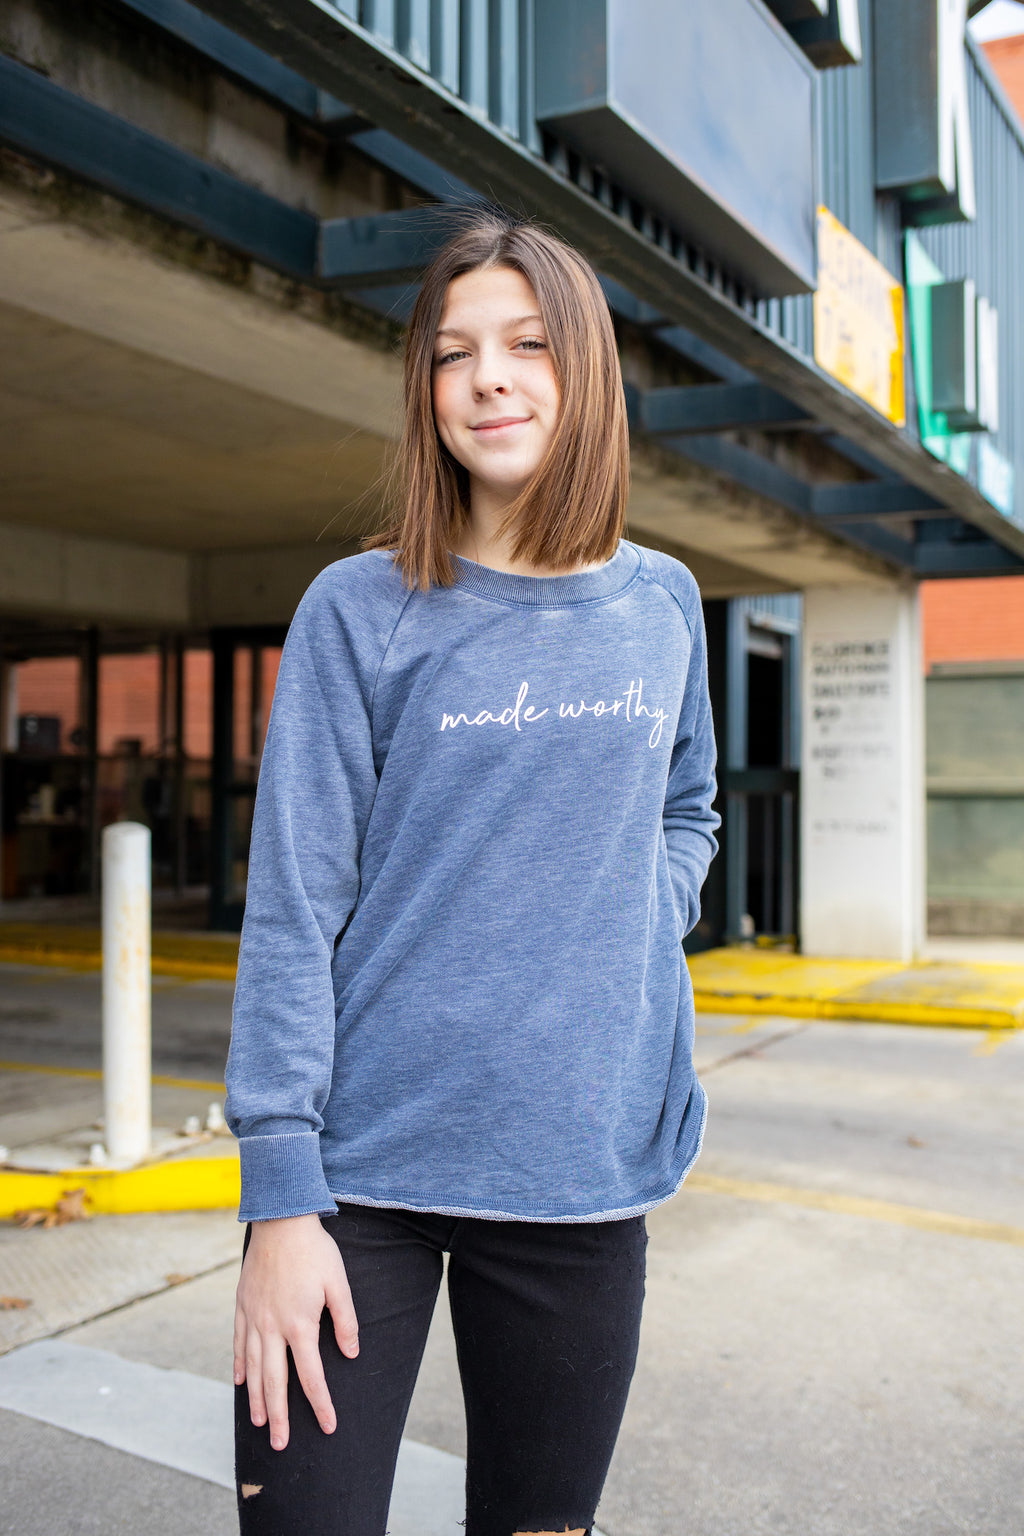 'Made worthy' sweatshirt